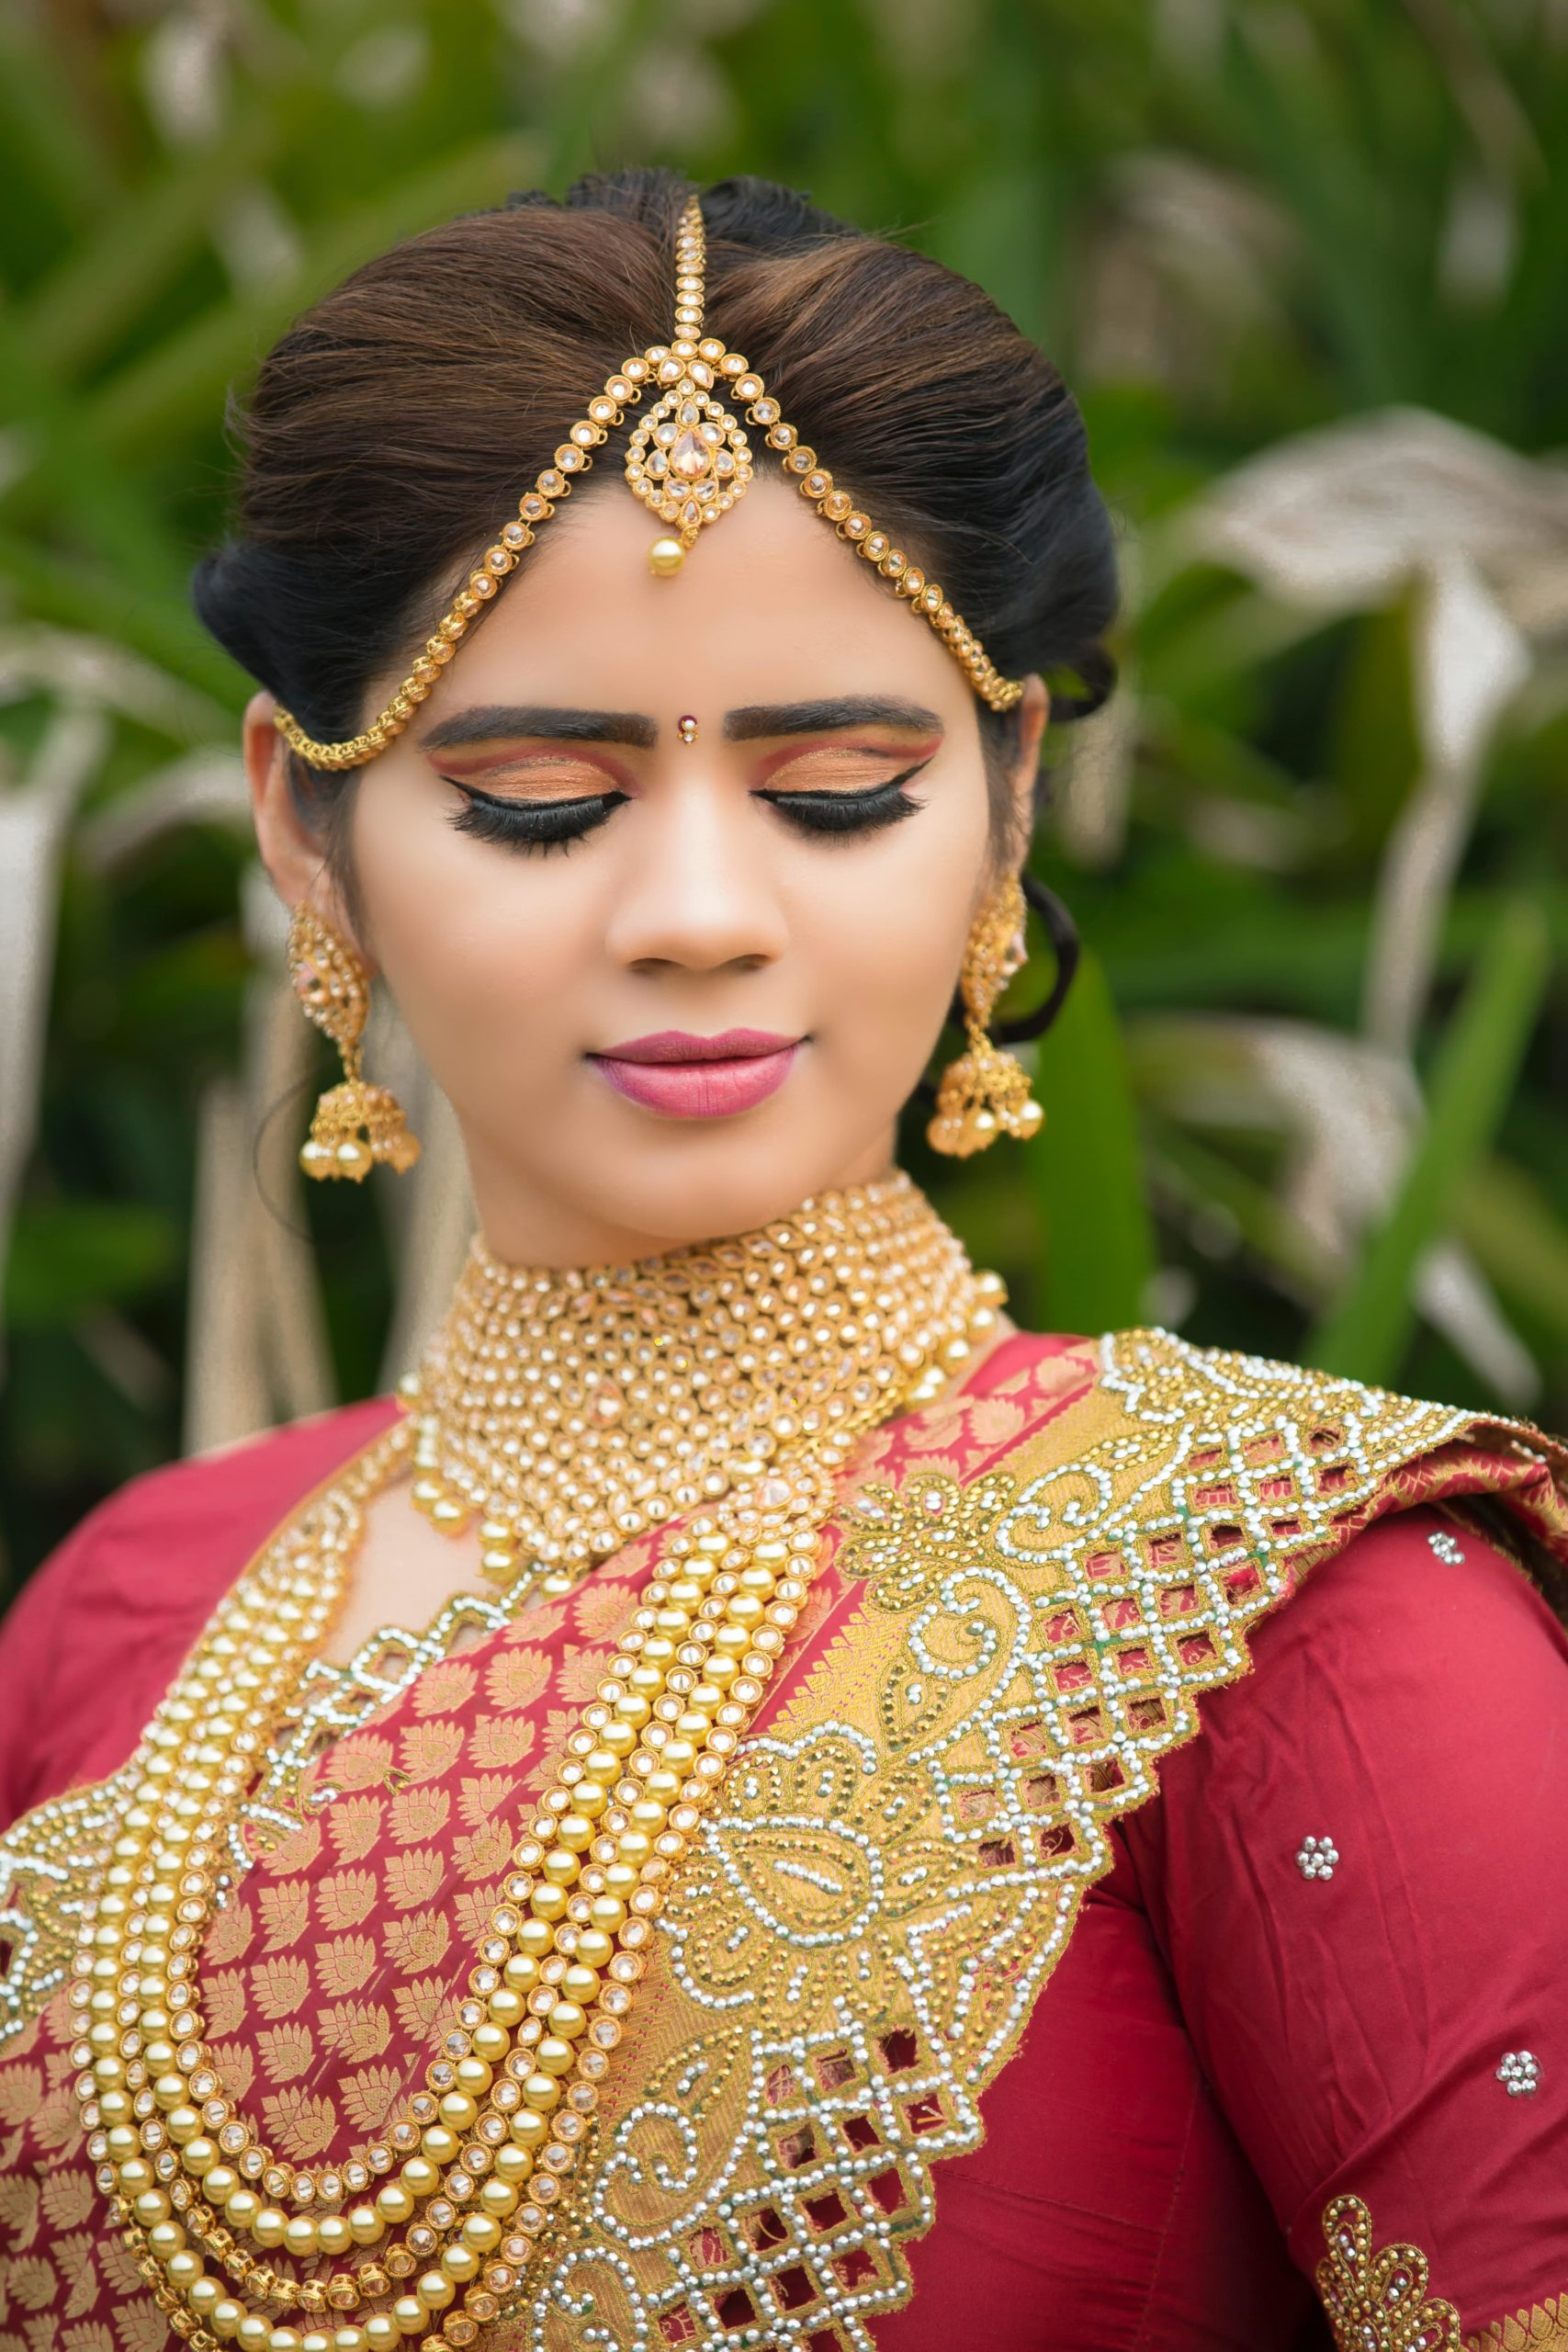 woman looking downwards, whilst wearing traditional bridal clothing.